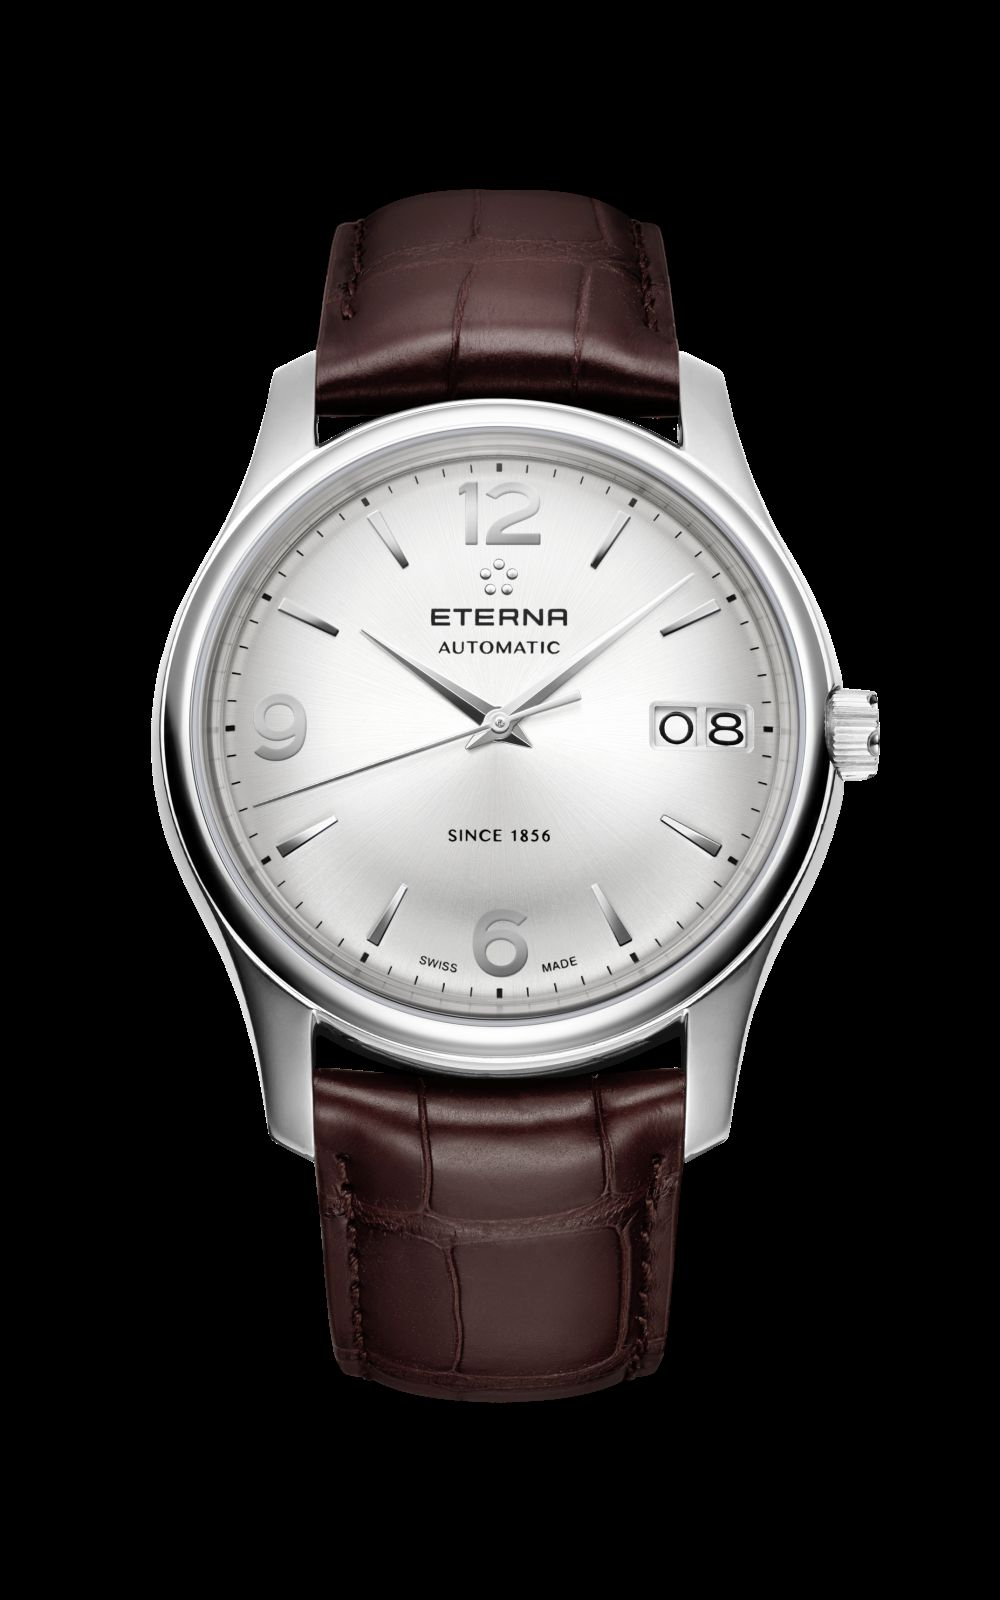 Eterna-Granges-1856-Watch-2.jpg